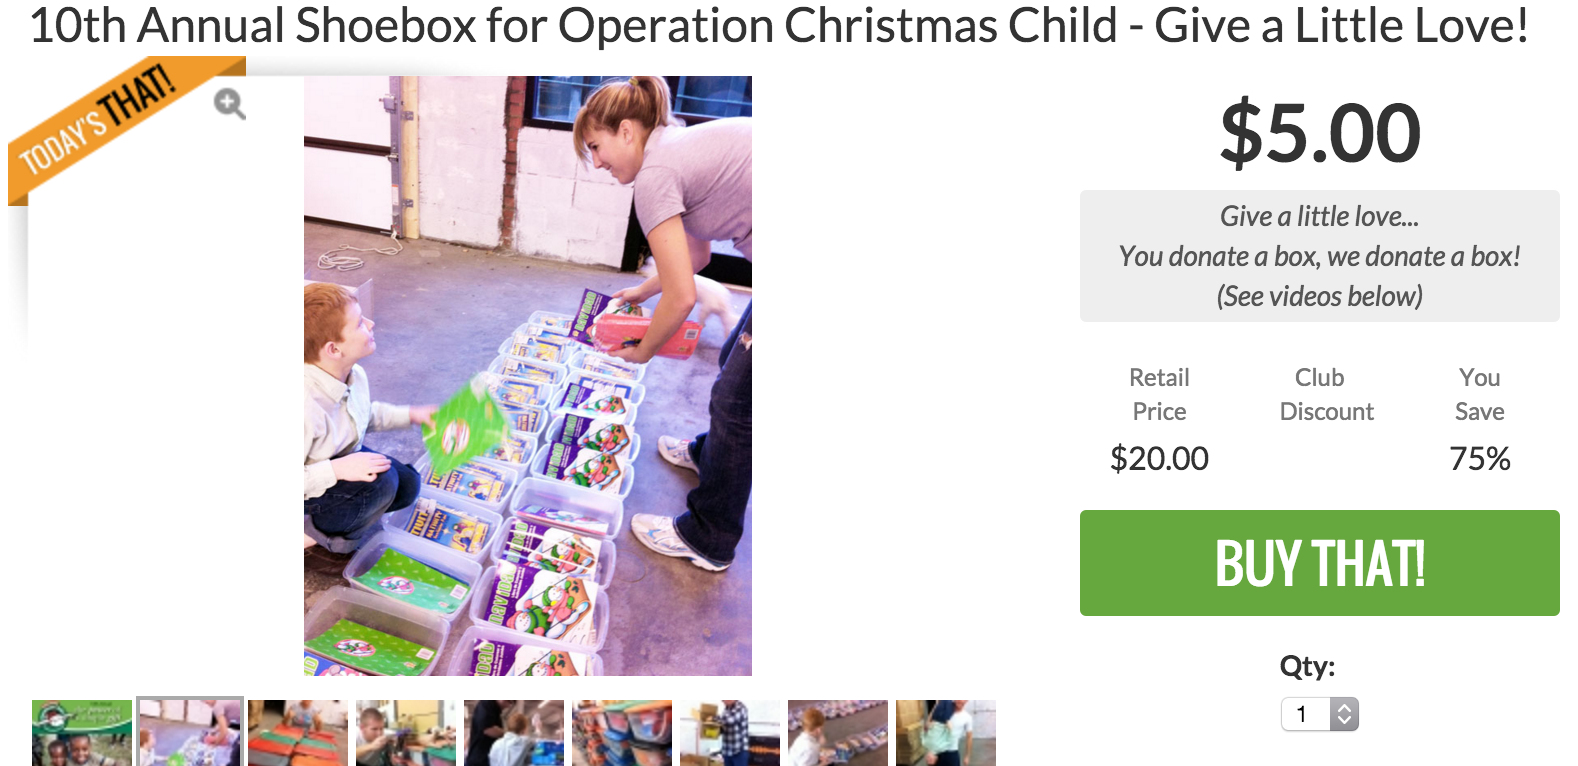 Pack and Ship an Operation Christmas Child Shoebox for Just $5 ...